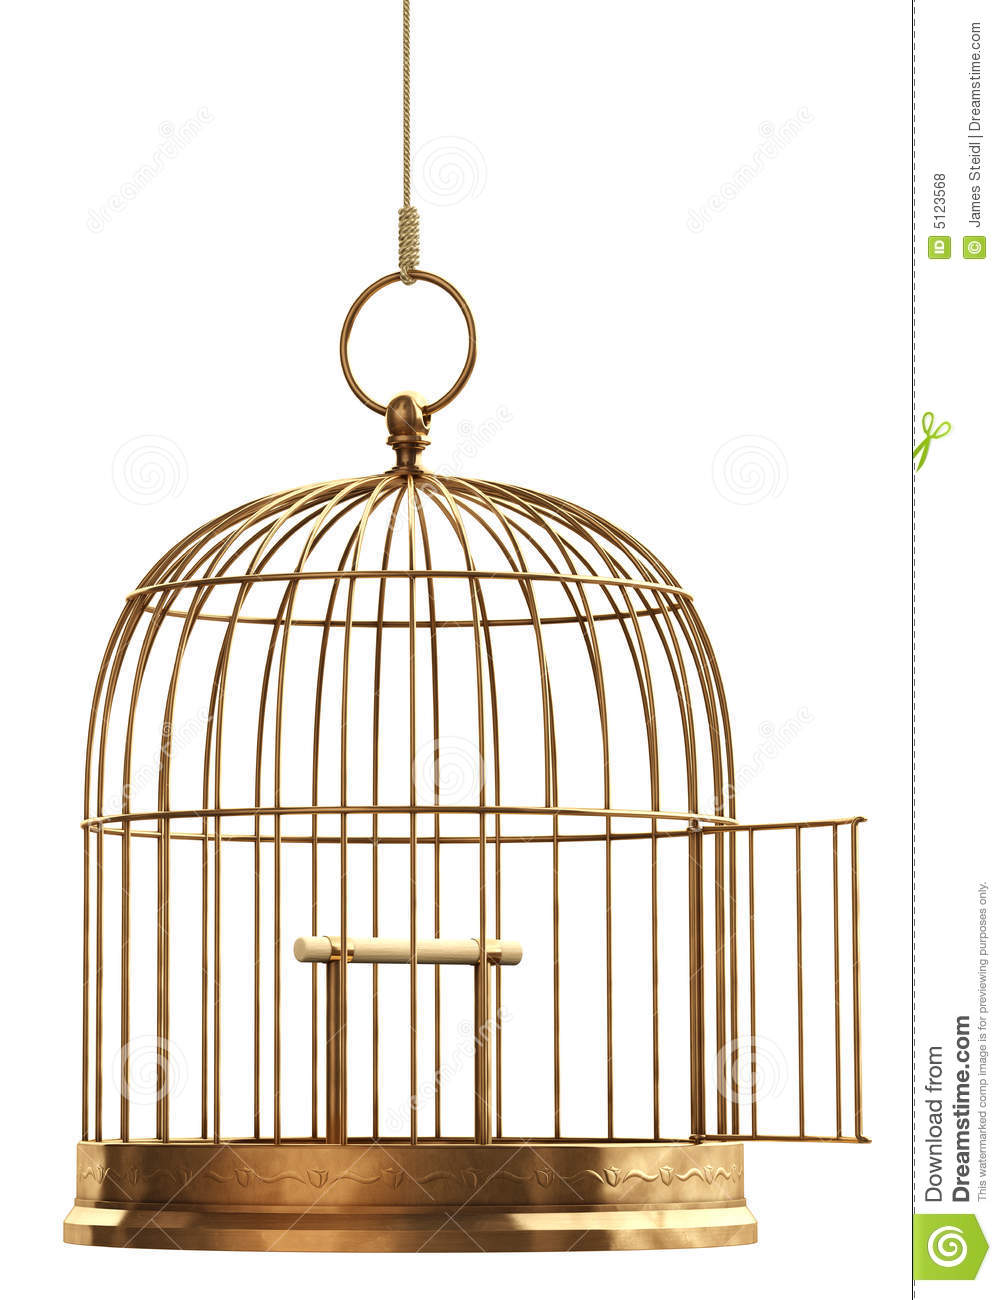 open bird cage stock photo image of brass empty. Black Bedroom Furniture Sets. Home Design Ideas